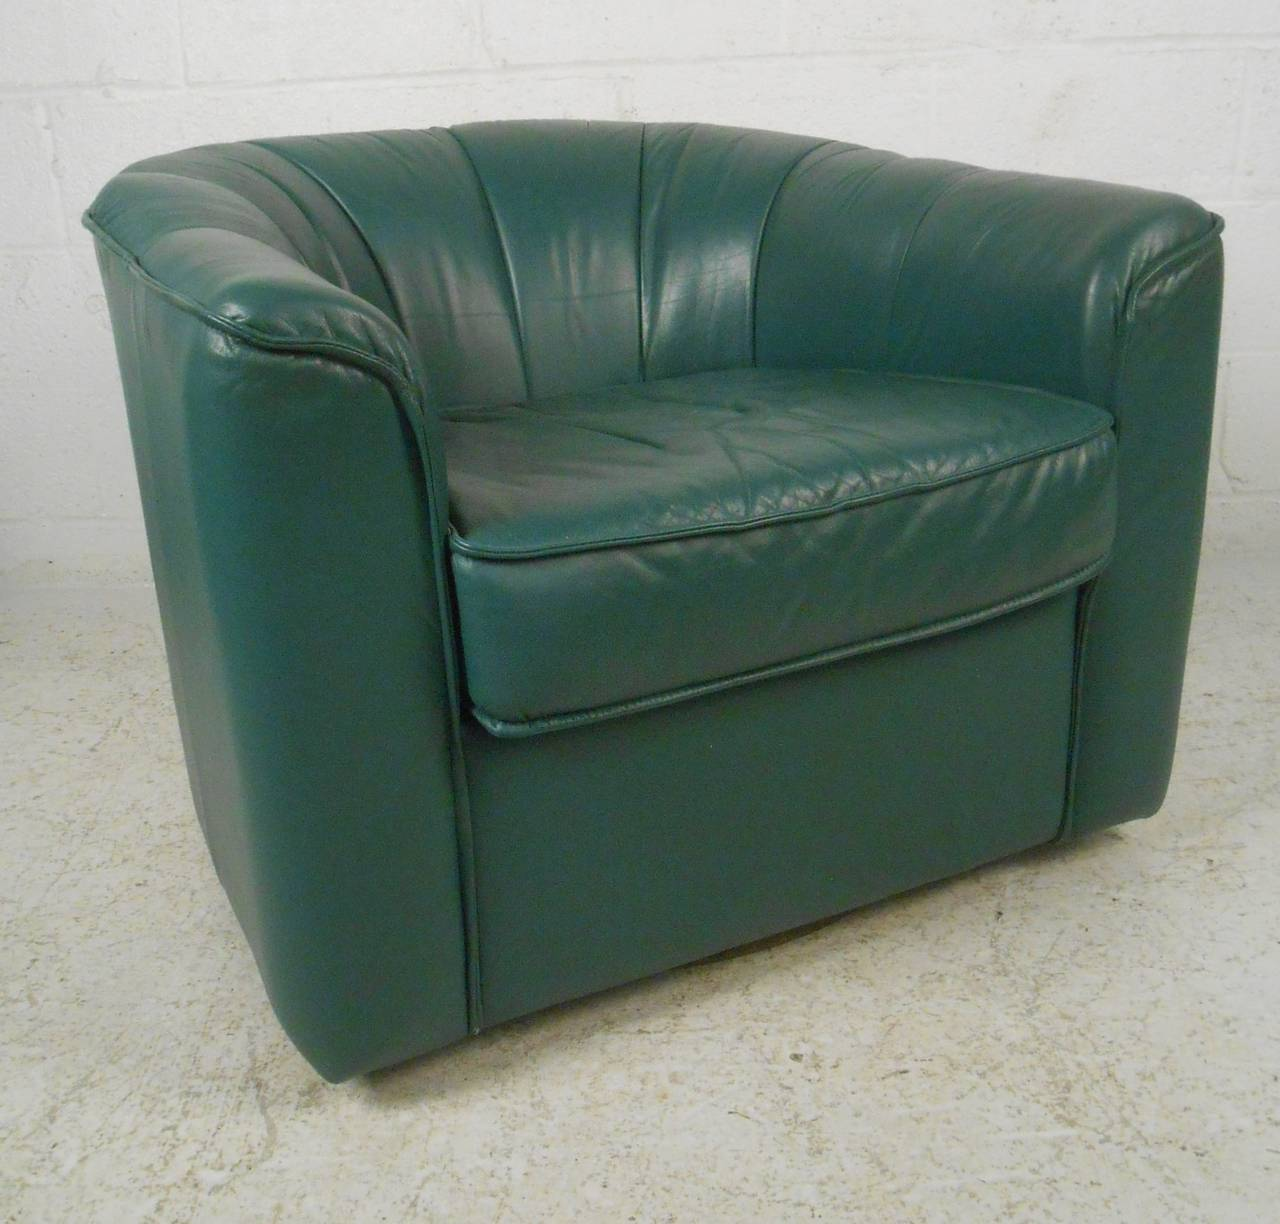 swivel chairs for sale chair lifts home pair contemporary modern club at